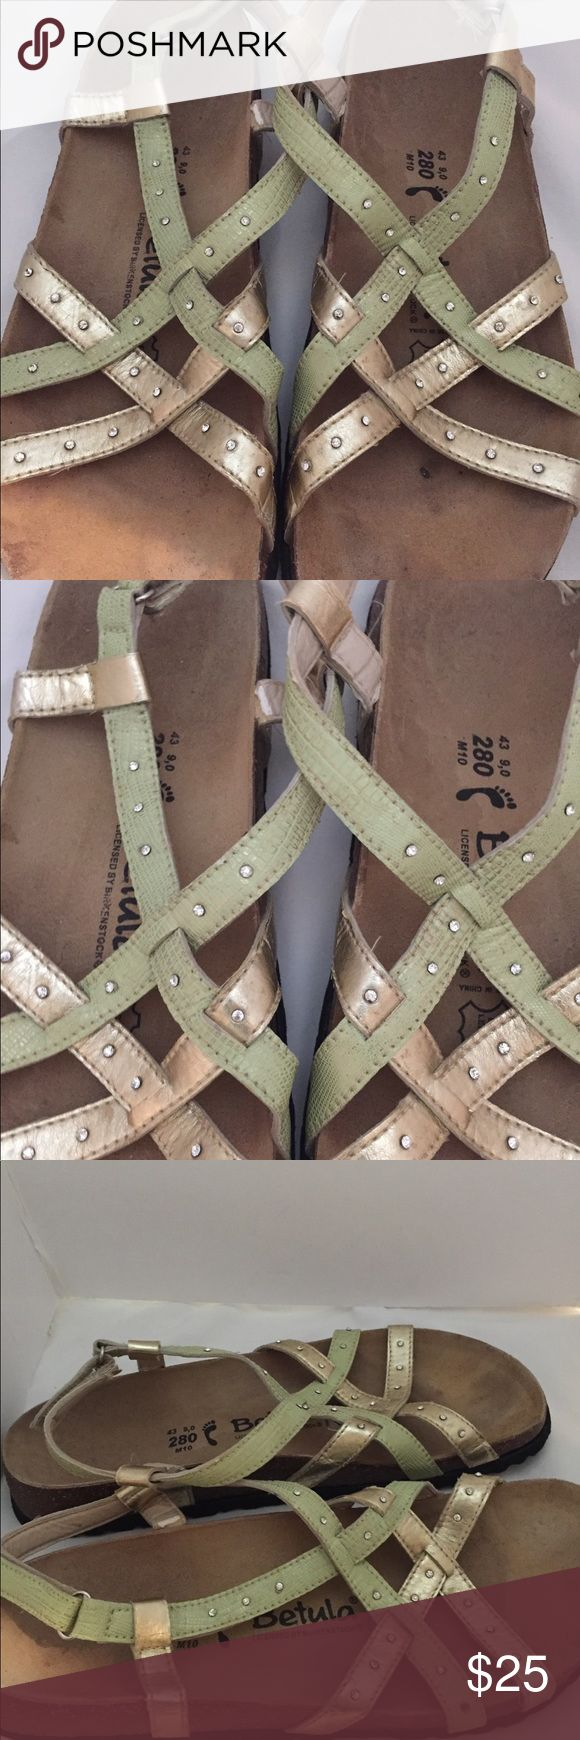 Birkenstock Betula sandals size 10 Betula sandals licensed by Birkenstock. Ladies size 10. In good clean pre owned condition. Birkenstock Shoes Sandals